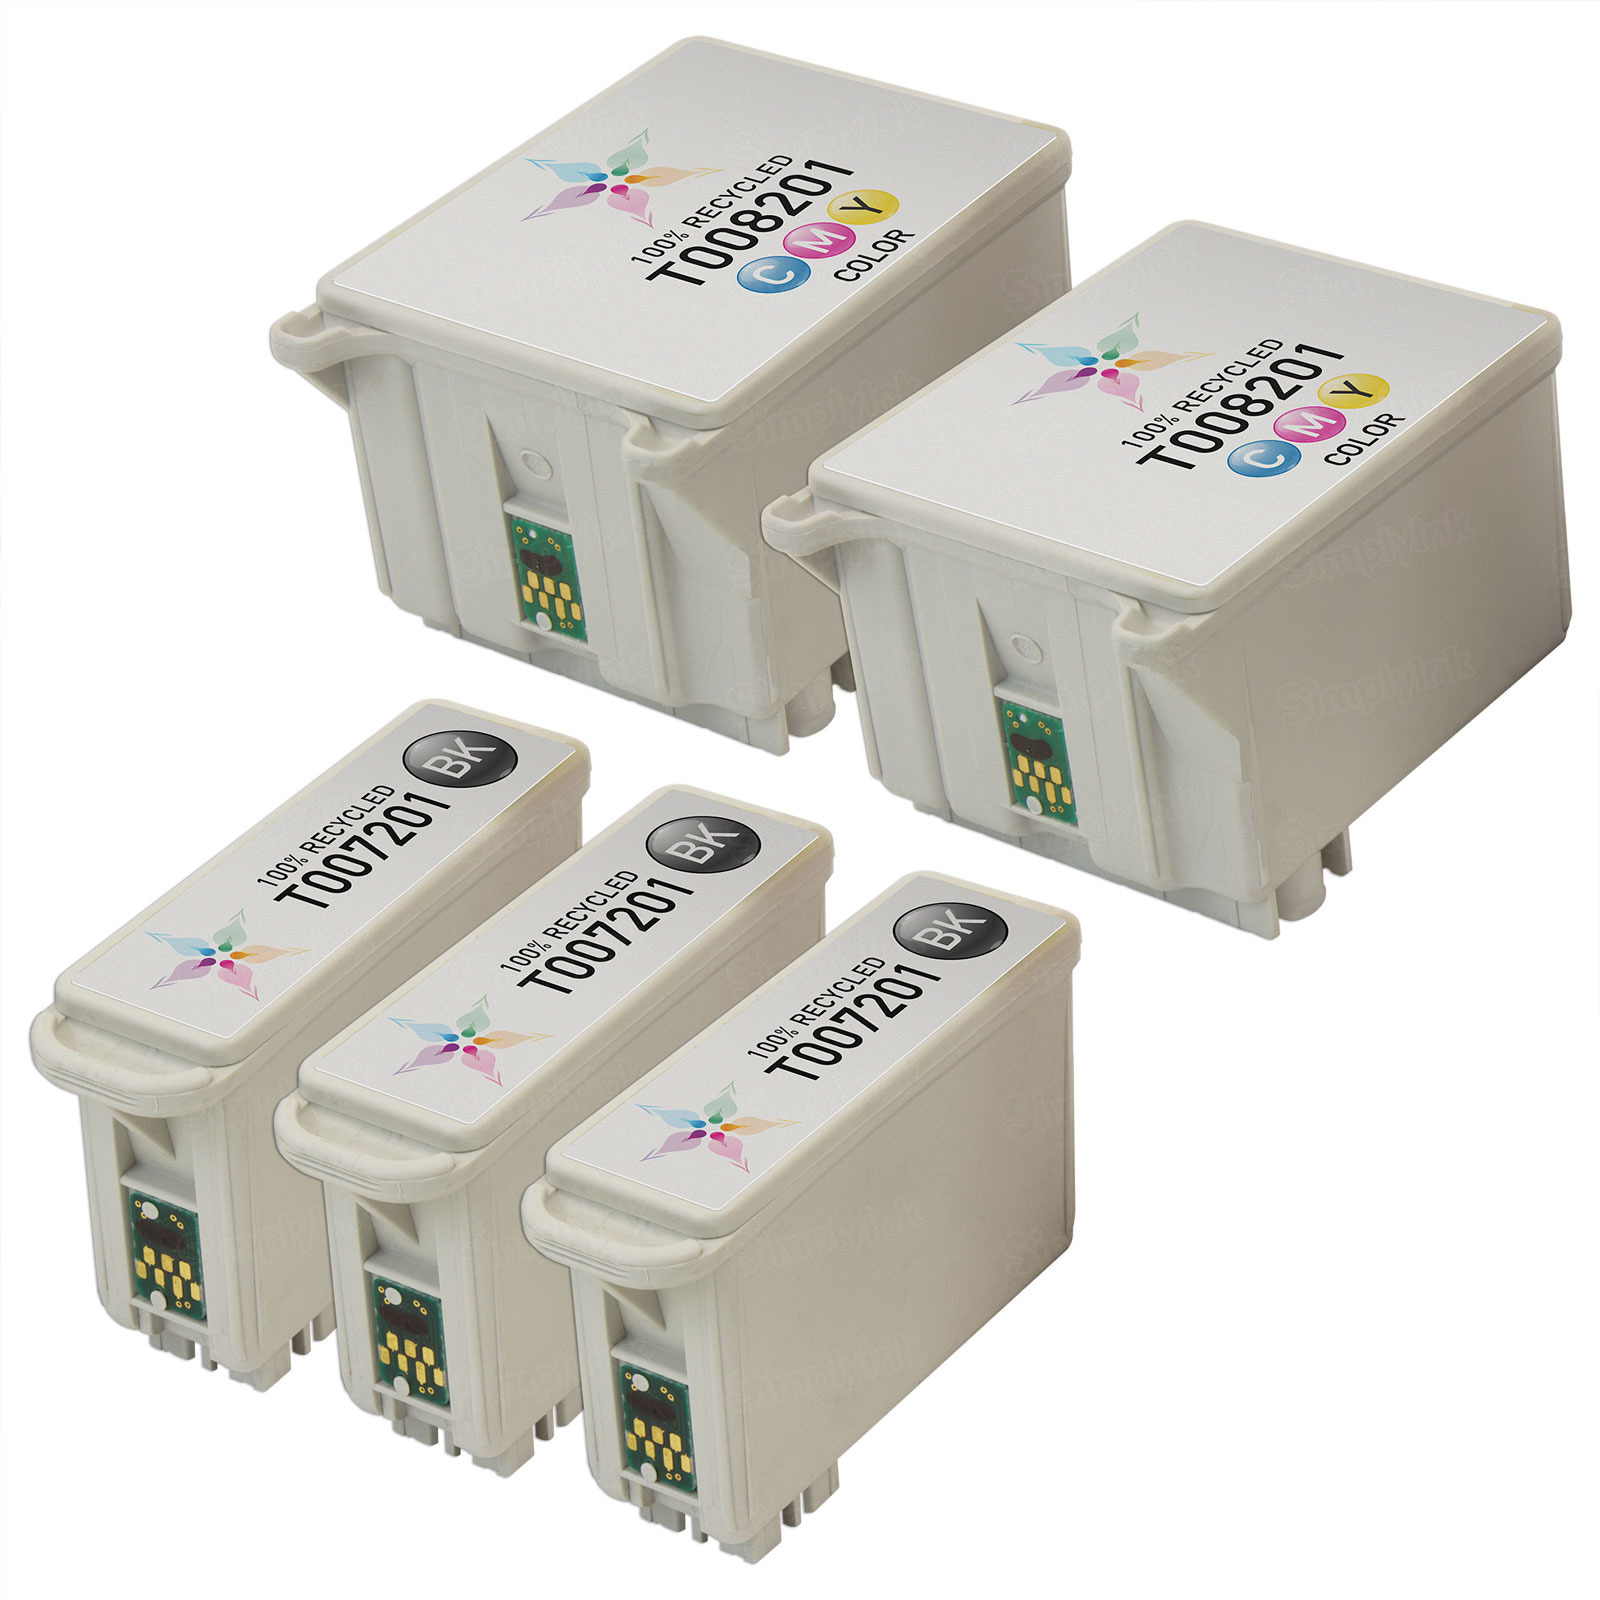 Inkjet Supplies for Epson Printers - Remanufactured Bulk Set of 5 Ink Cartridges 3 Black Epson T007201 (T007) and 2 Color Epson T008201 (T008)